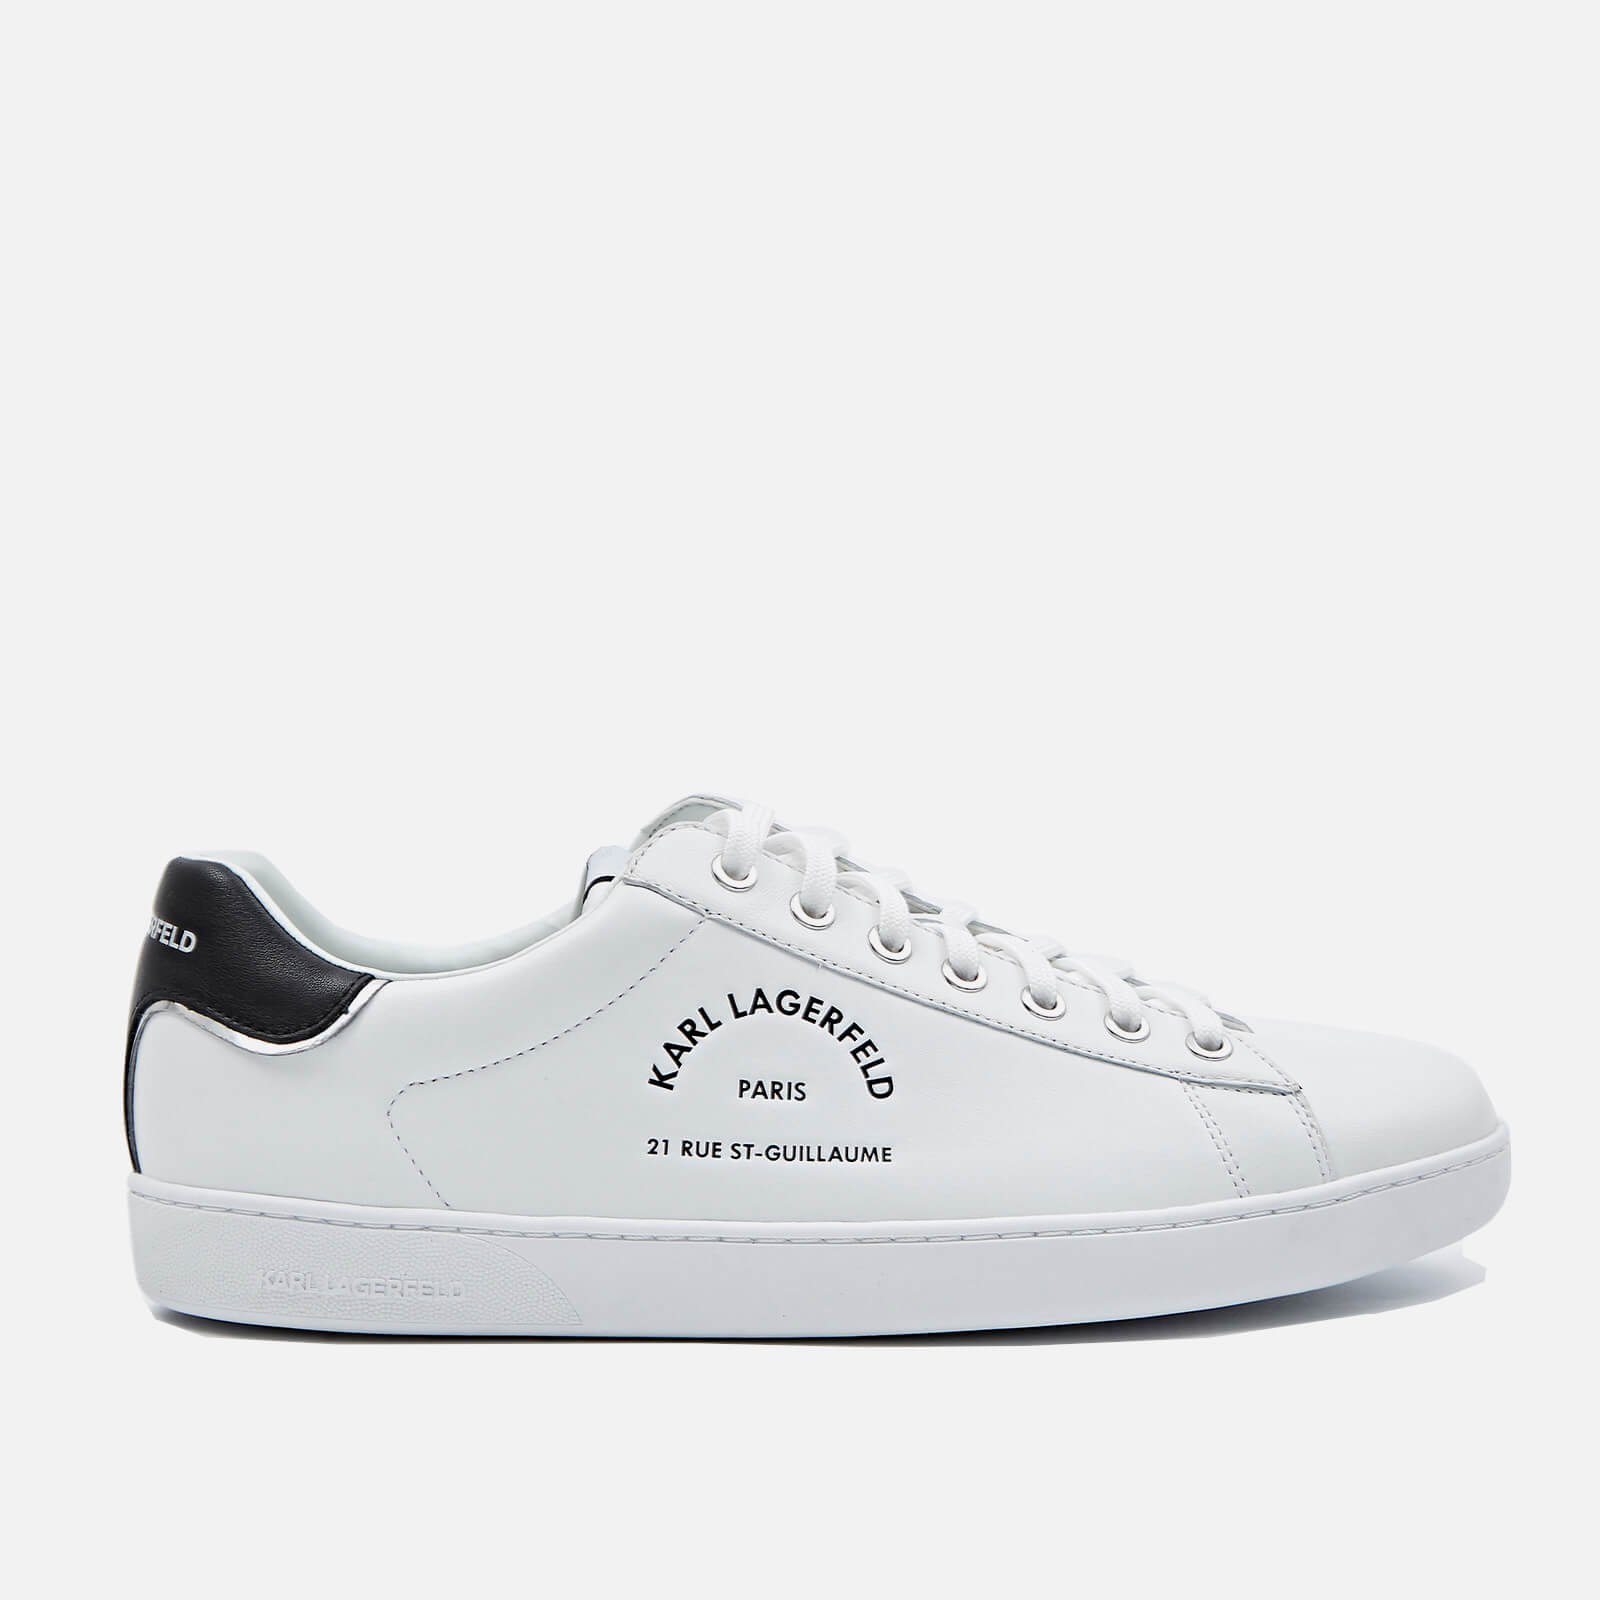 Karl Lagerfeld Mens Kourt Ii Leather Cupsole Trainers White Uk 8